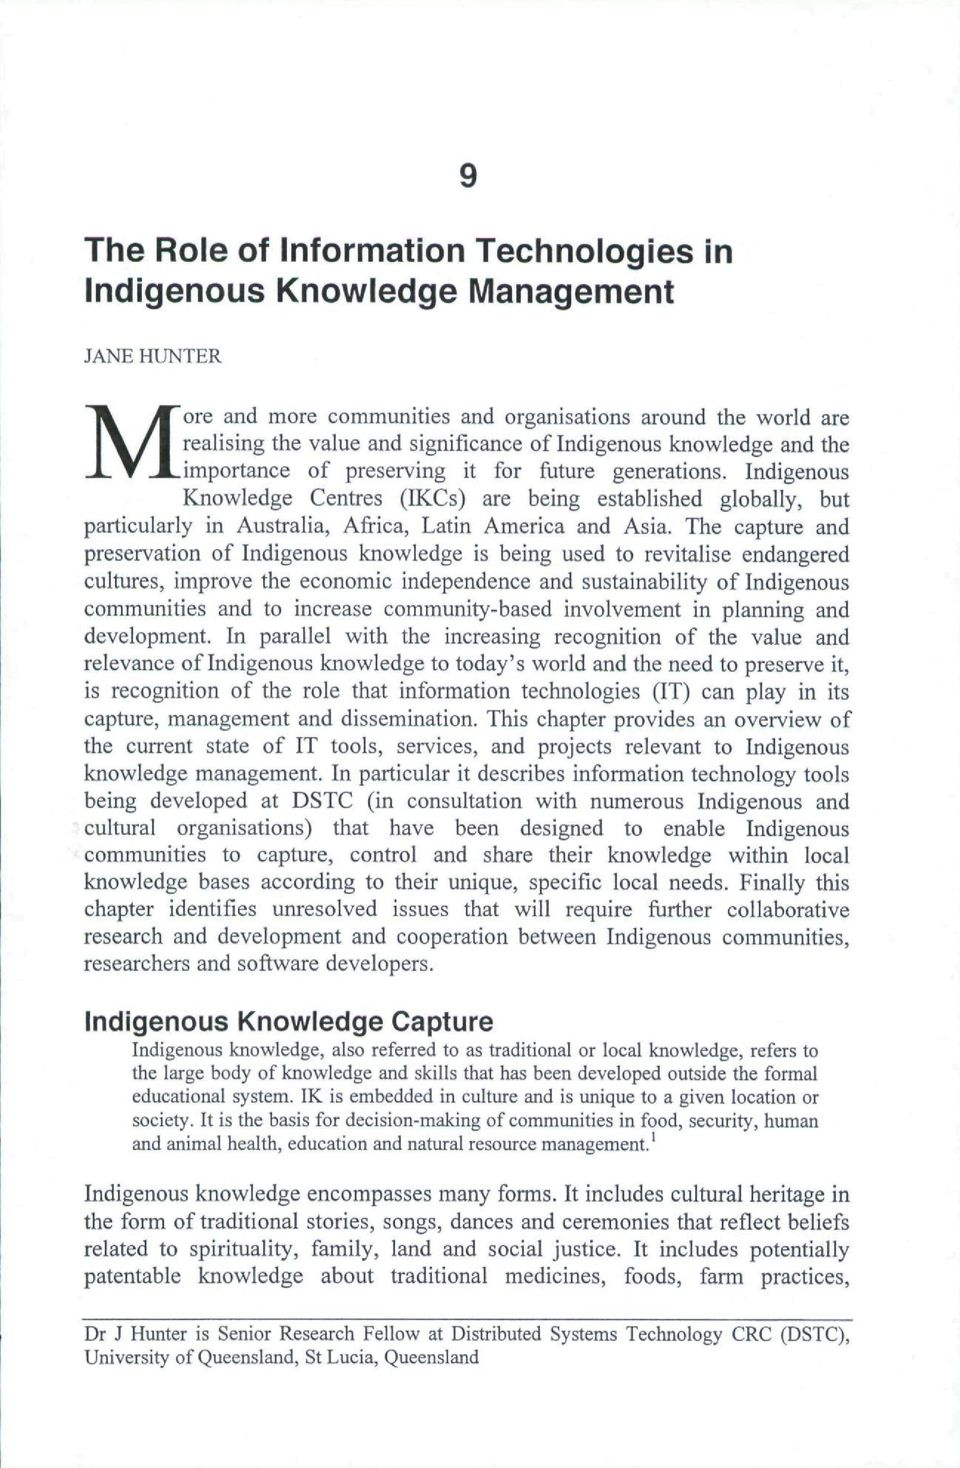 The capture and preservation of Indigenous knowledge is being used to revitalise endangered cultures, improve the economic independence and sustainability of Indigenous communities and to increase